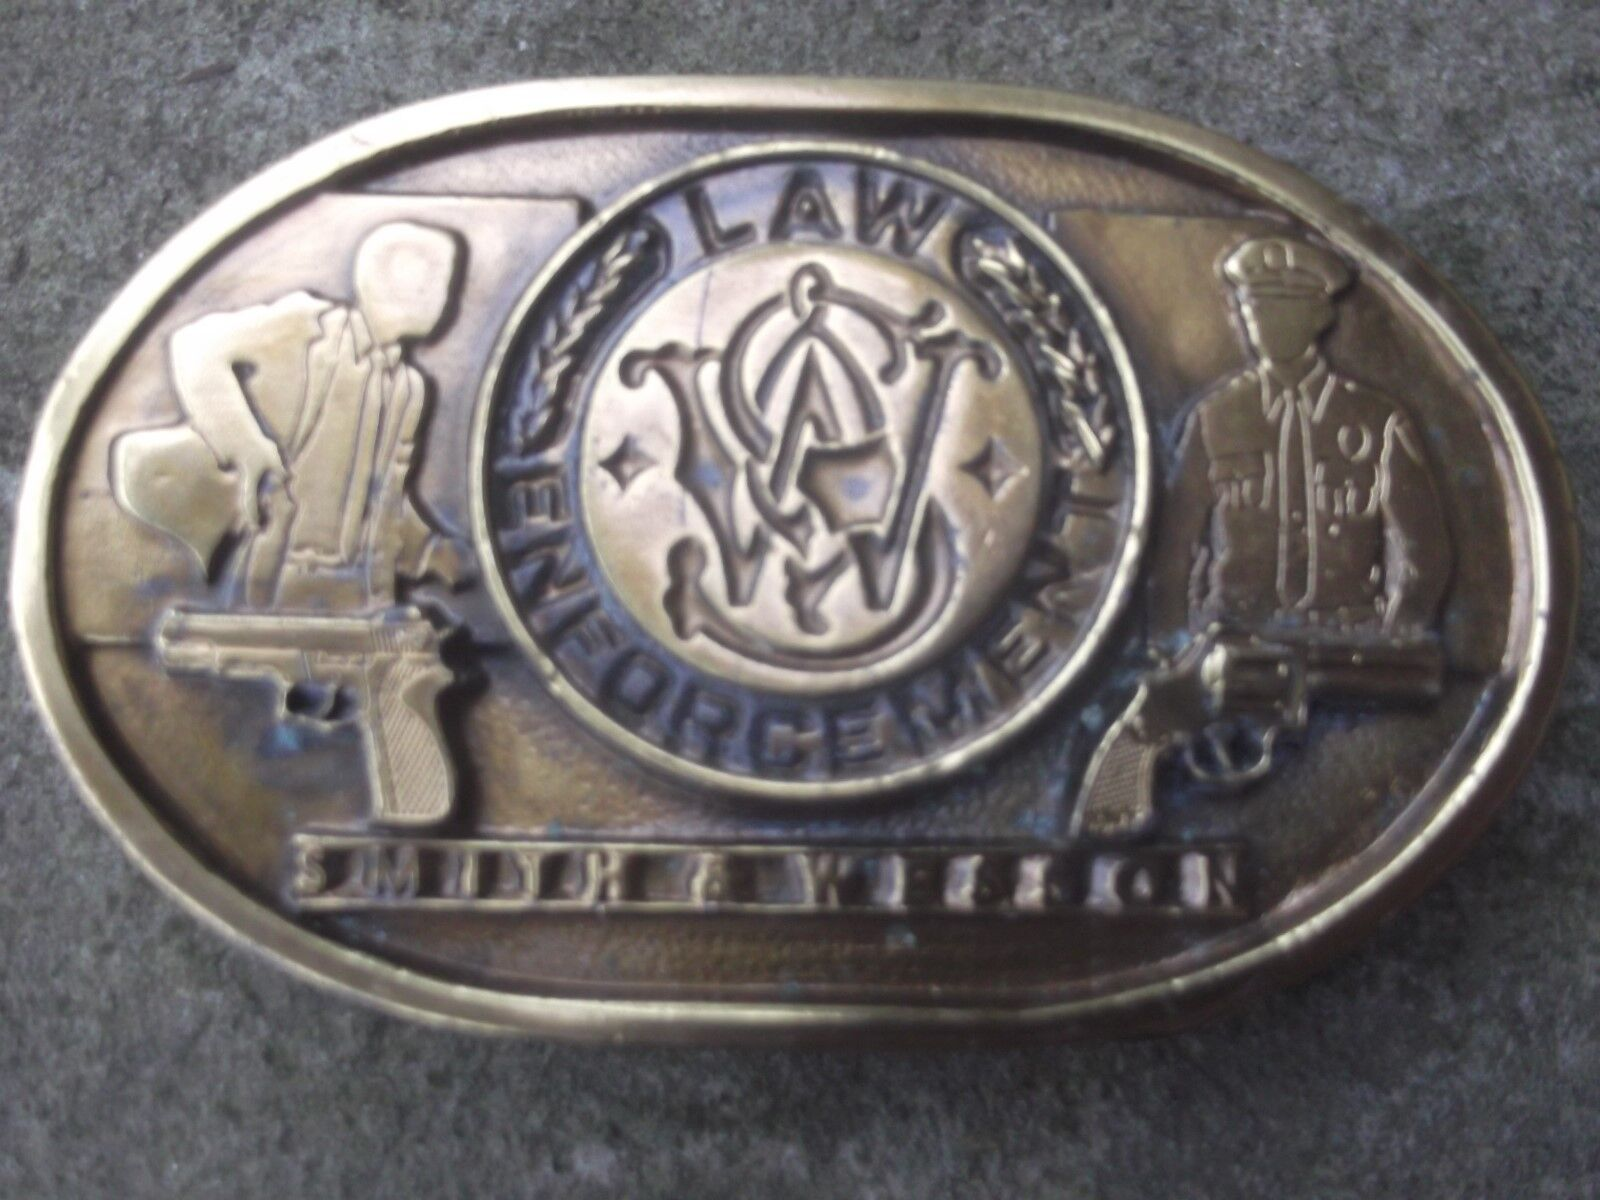 Smith and Wesson Law Enforcement Vintage Belt Buckle